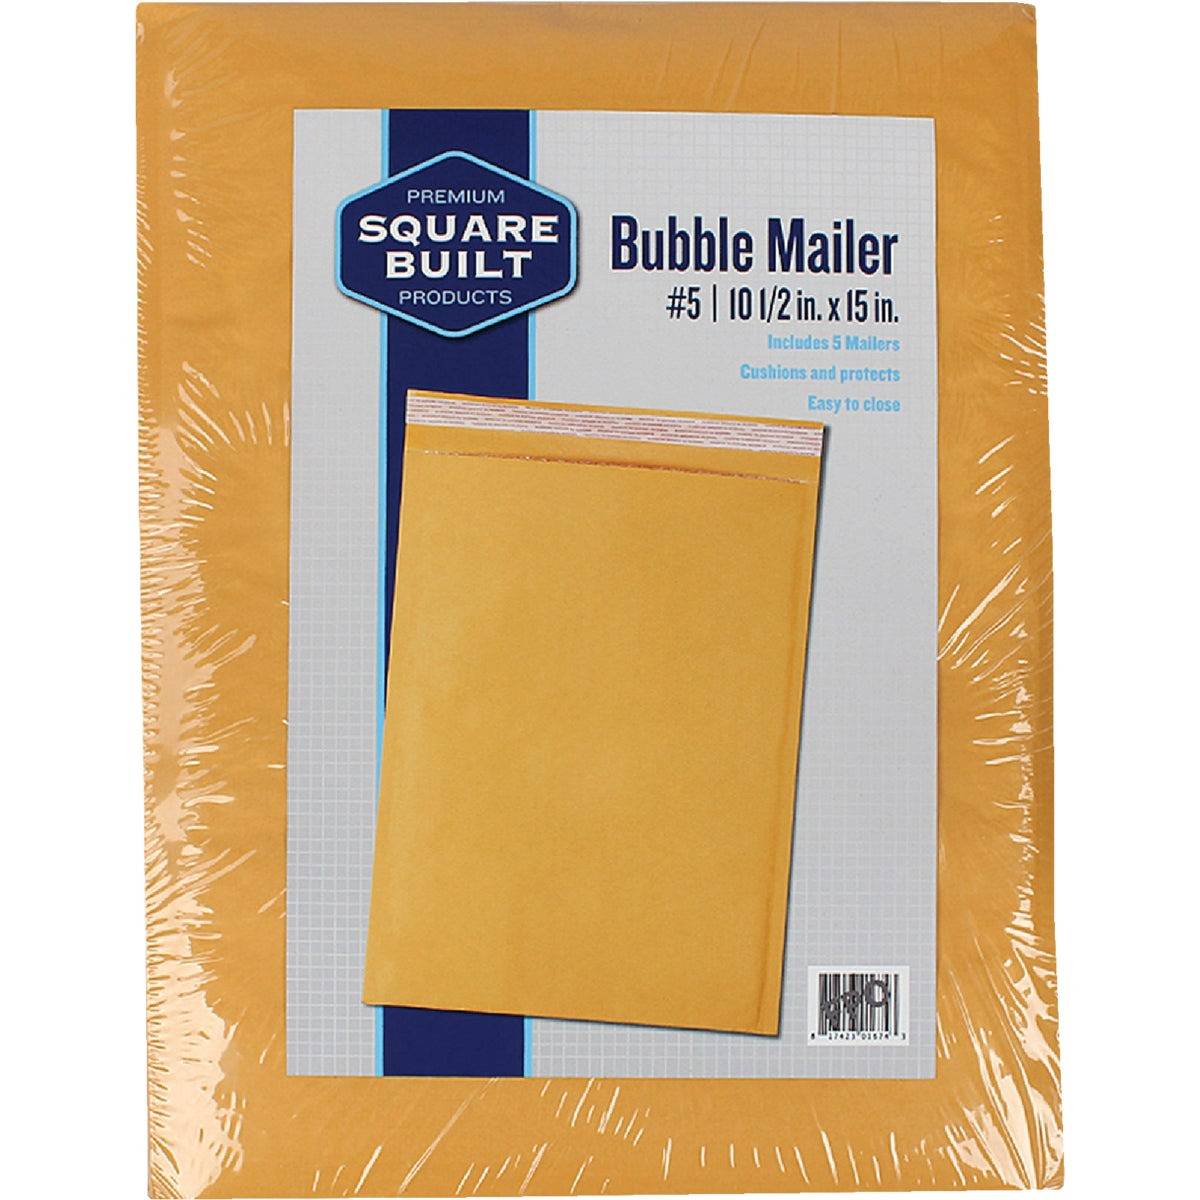 #6 BUBBLE MAILER - RBM1219-4 by Broadway Industries